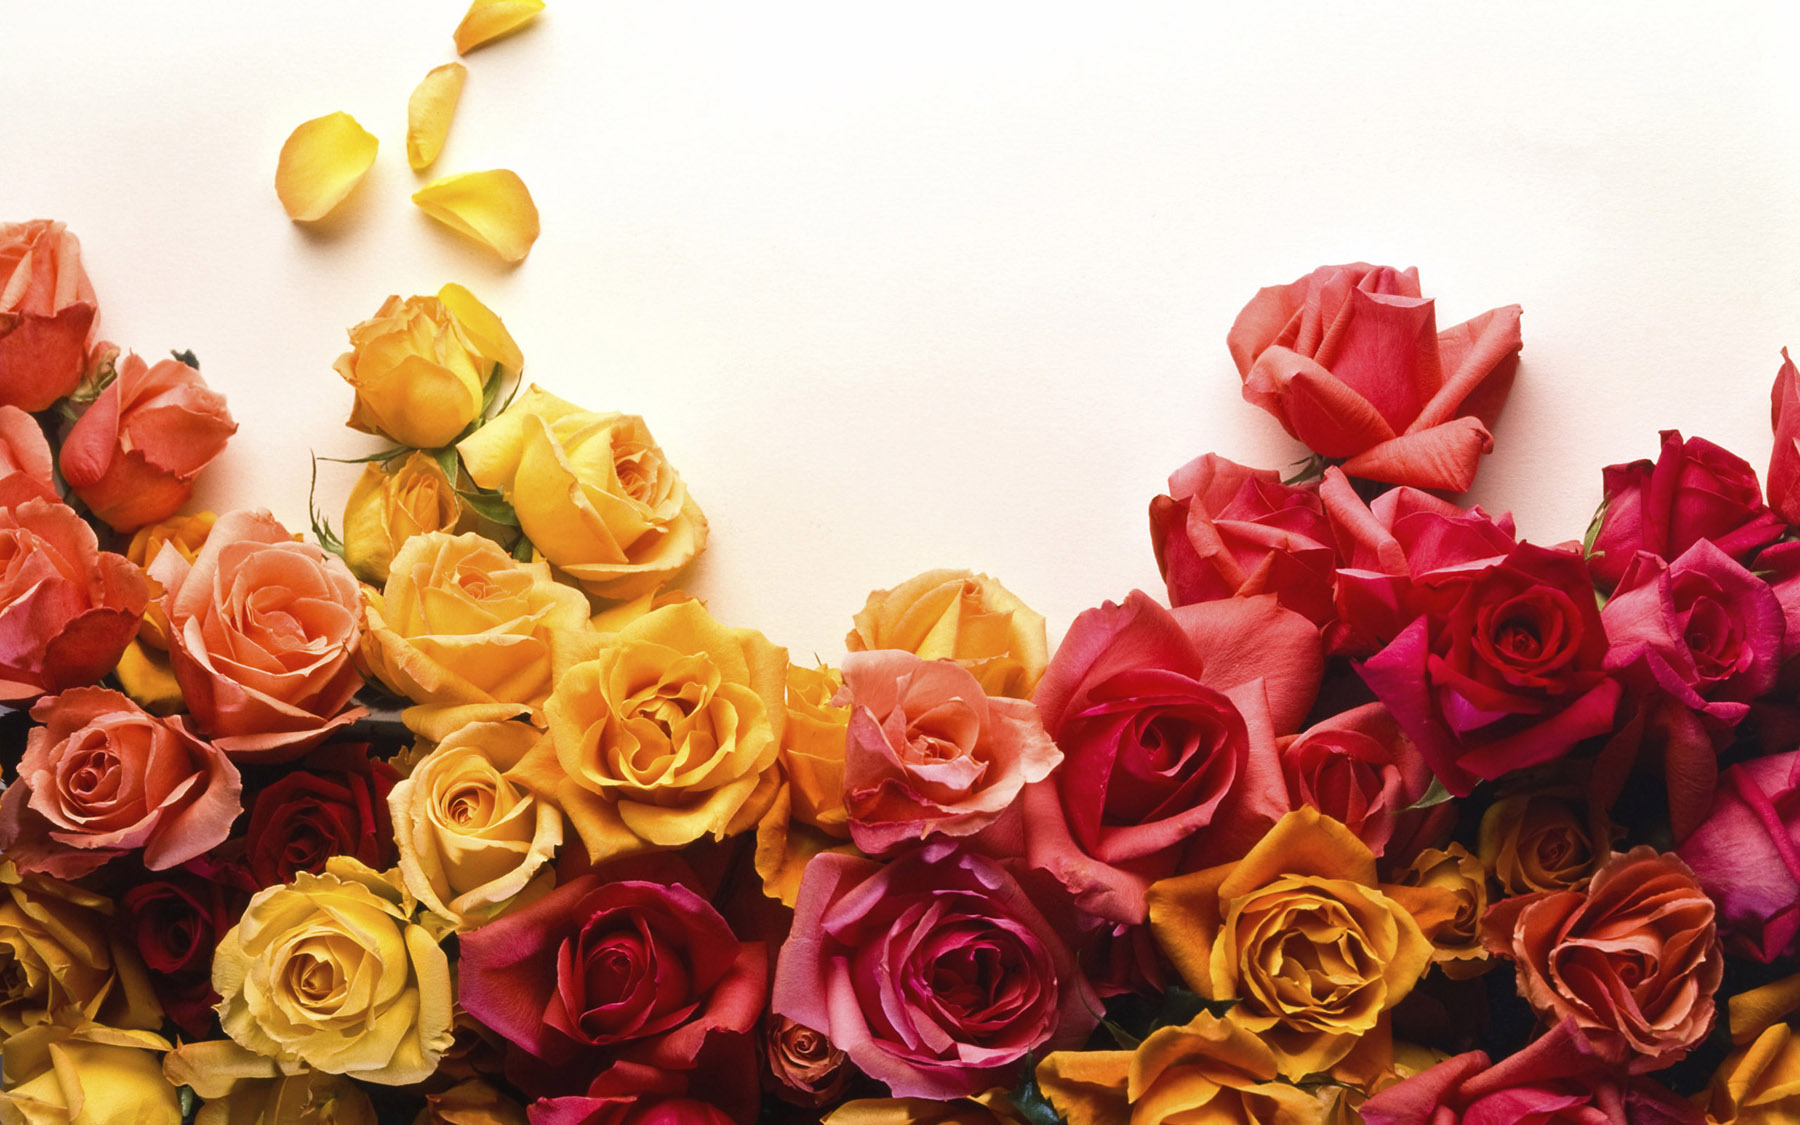 High-resolution photo roses 25105